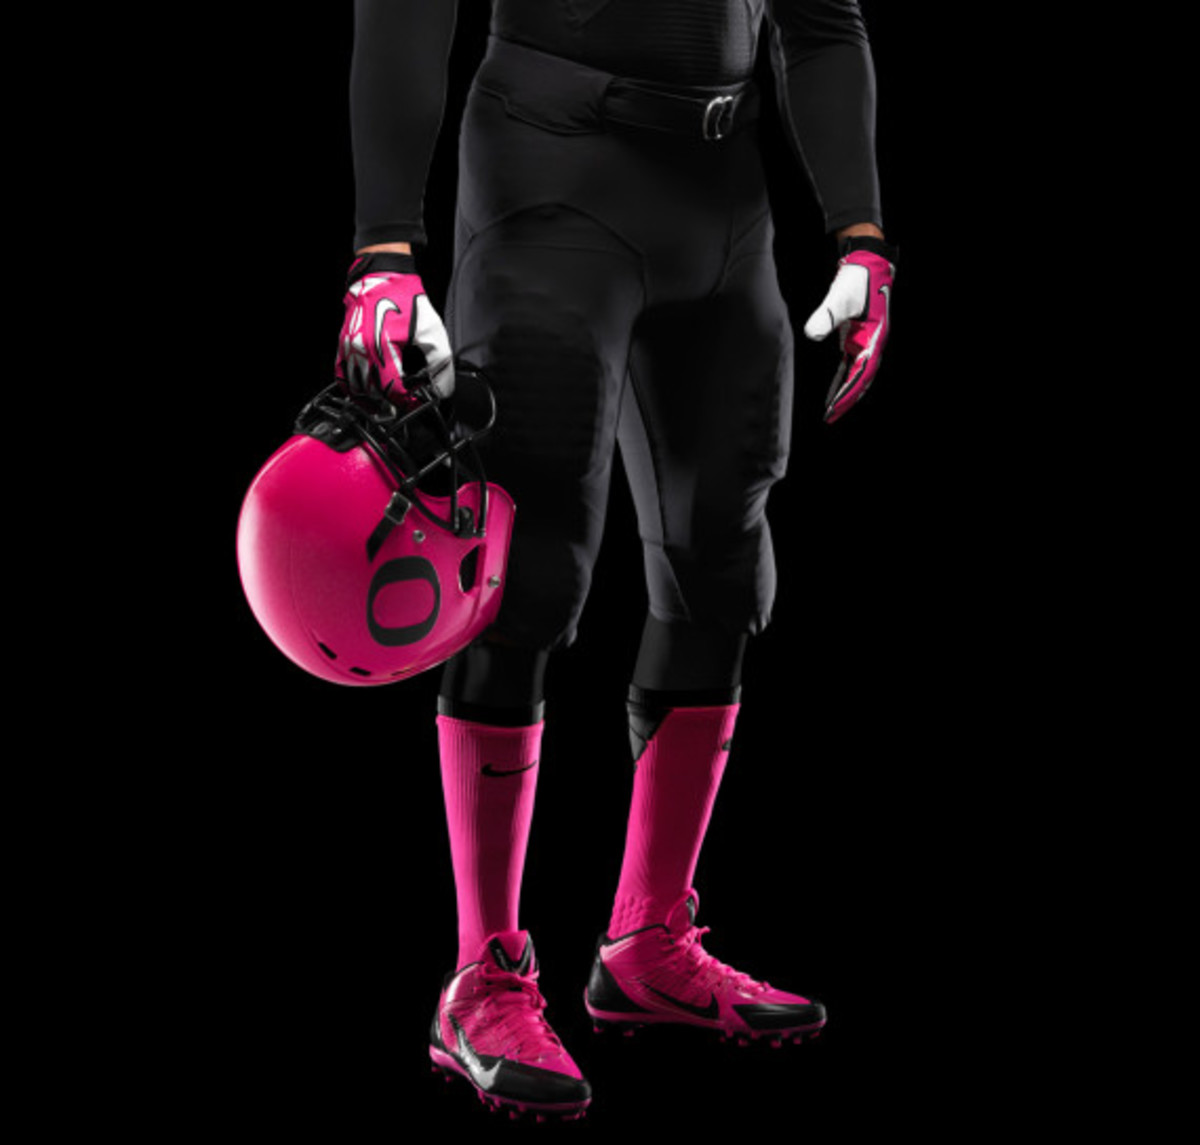 nike-oregon-ducks-football-pays-tribute-to-breast-cancer-awareness-03